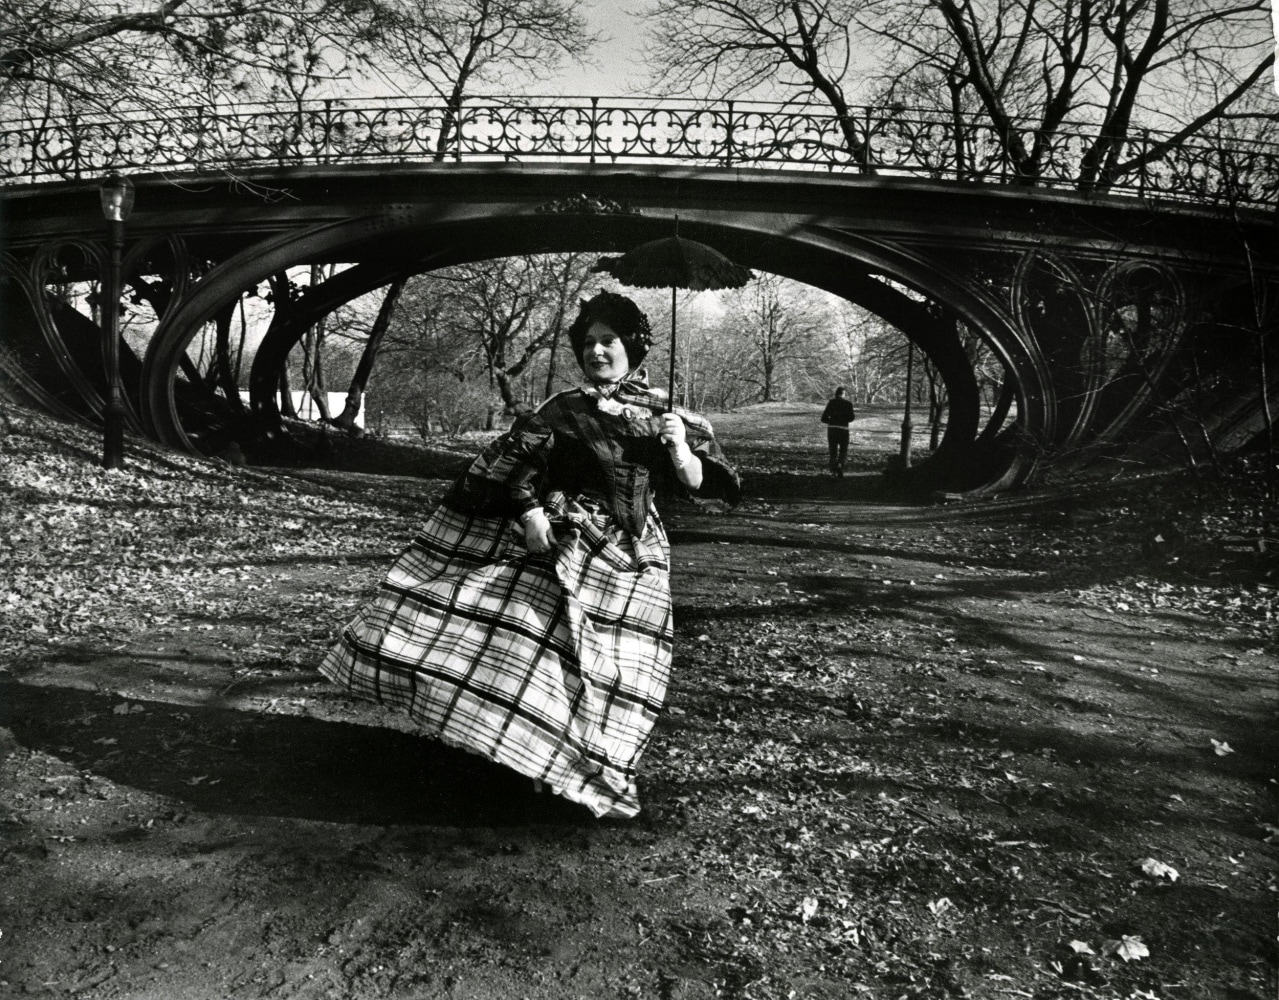 fashion meets architecture in revived photo essay nbc news image editta sherman poses in period costume in front of the gothic bridge in central